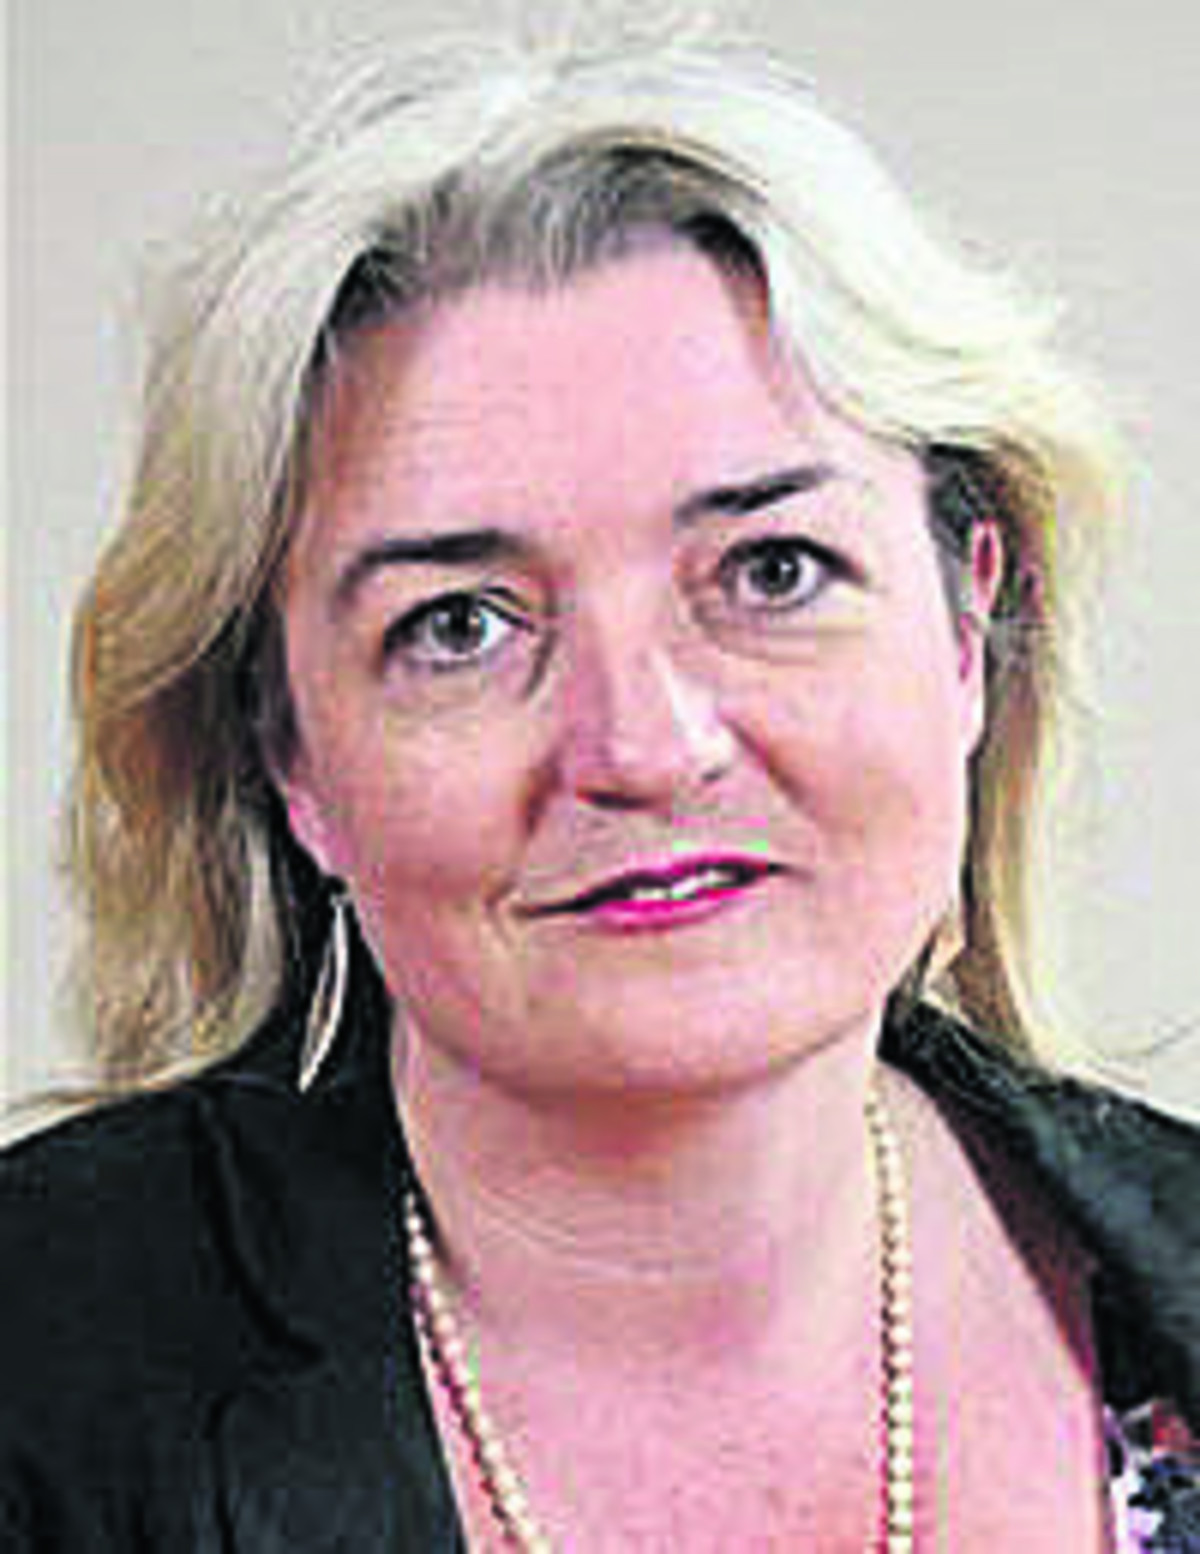 Dr Helena McKeown, a Salisbury GP who is also a Liberal Democrat councillor